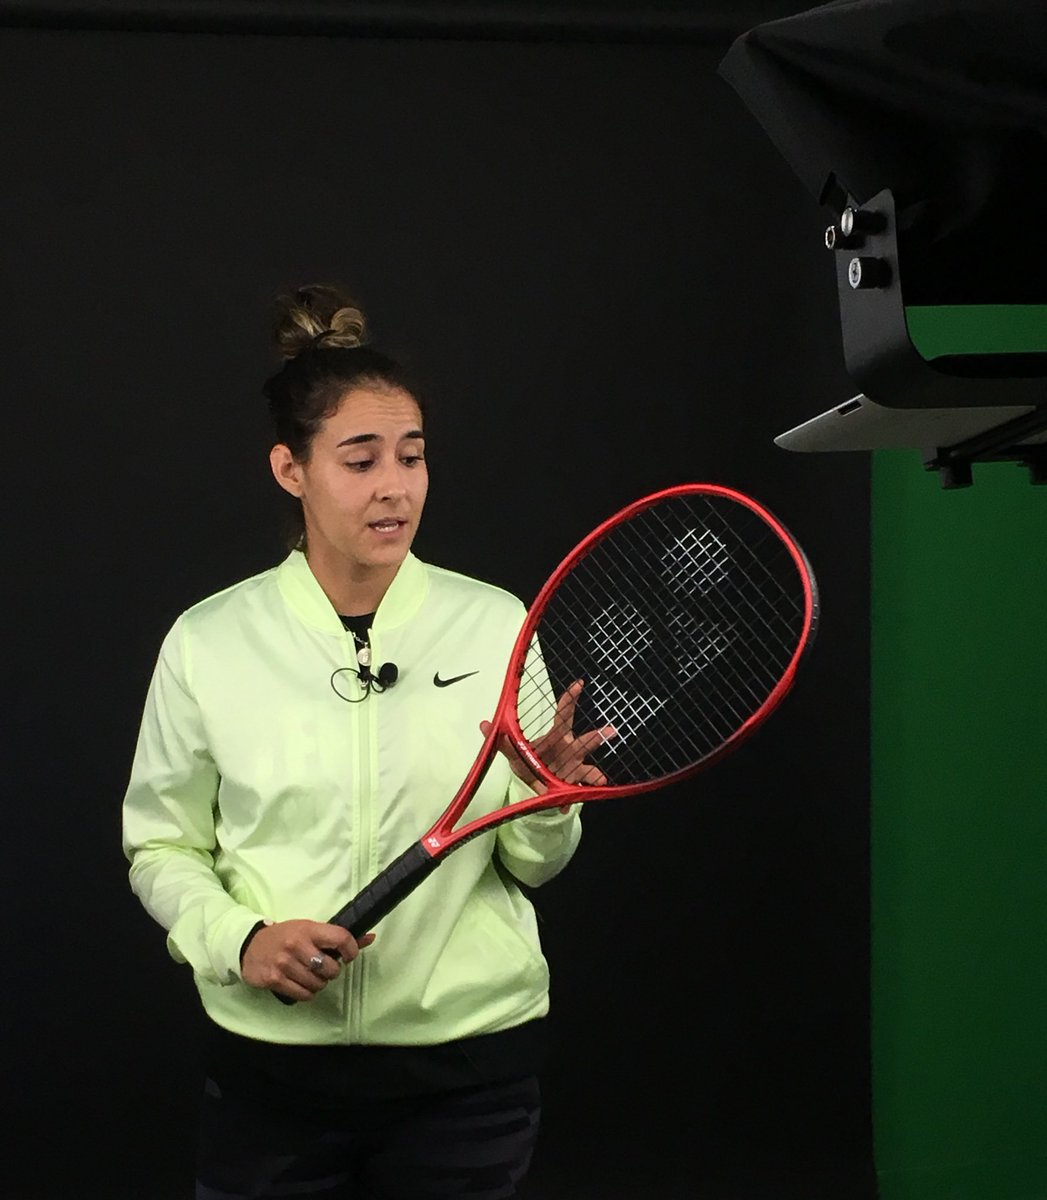 Tennis Express Htx On Twitter In Studio With Susana Today Stay